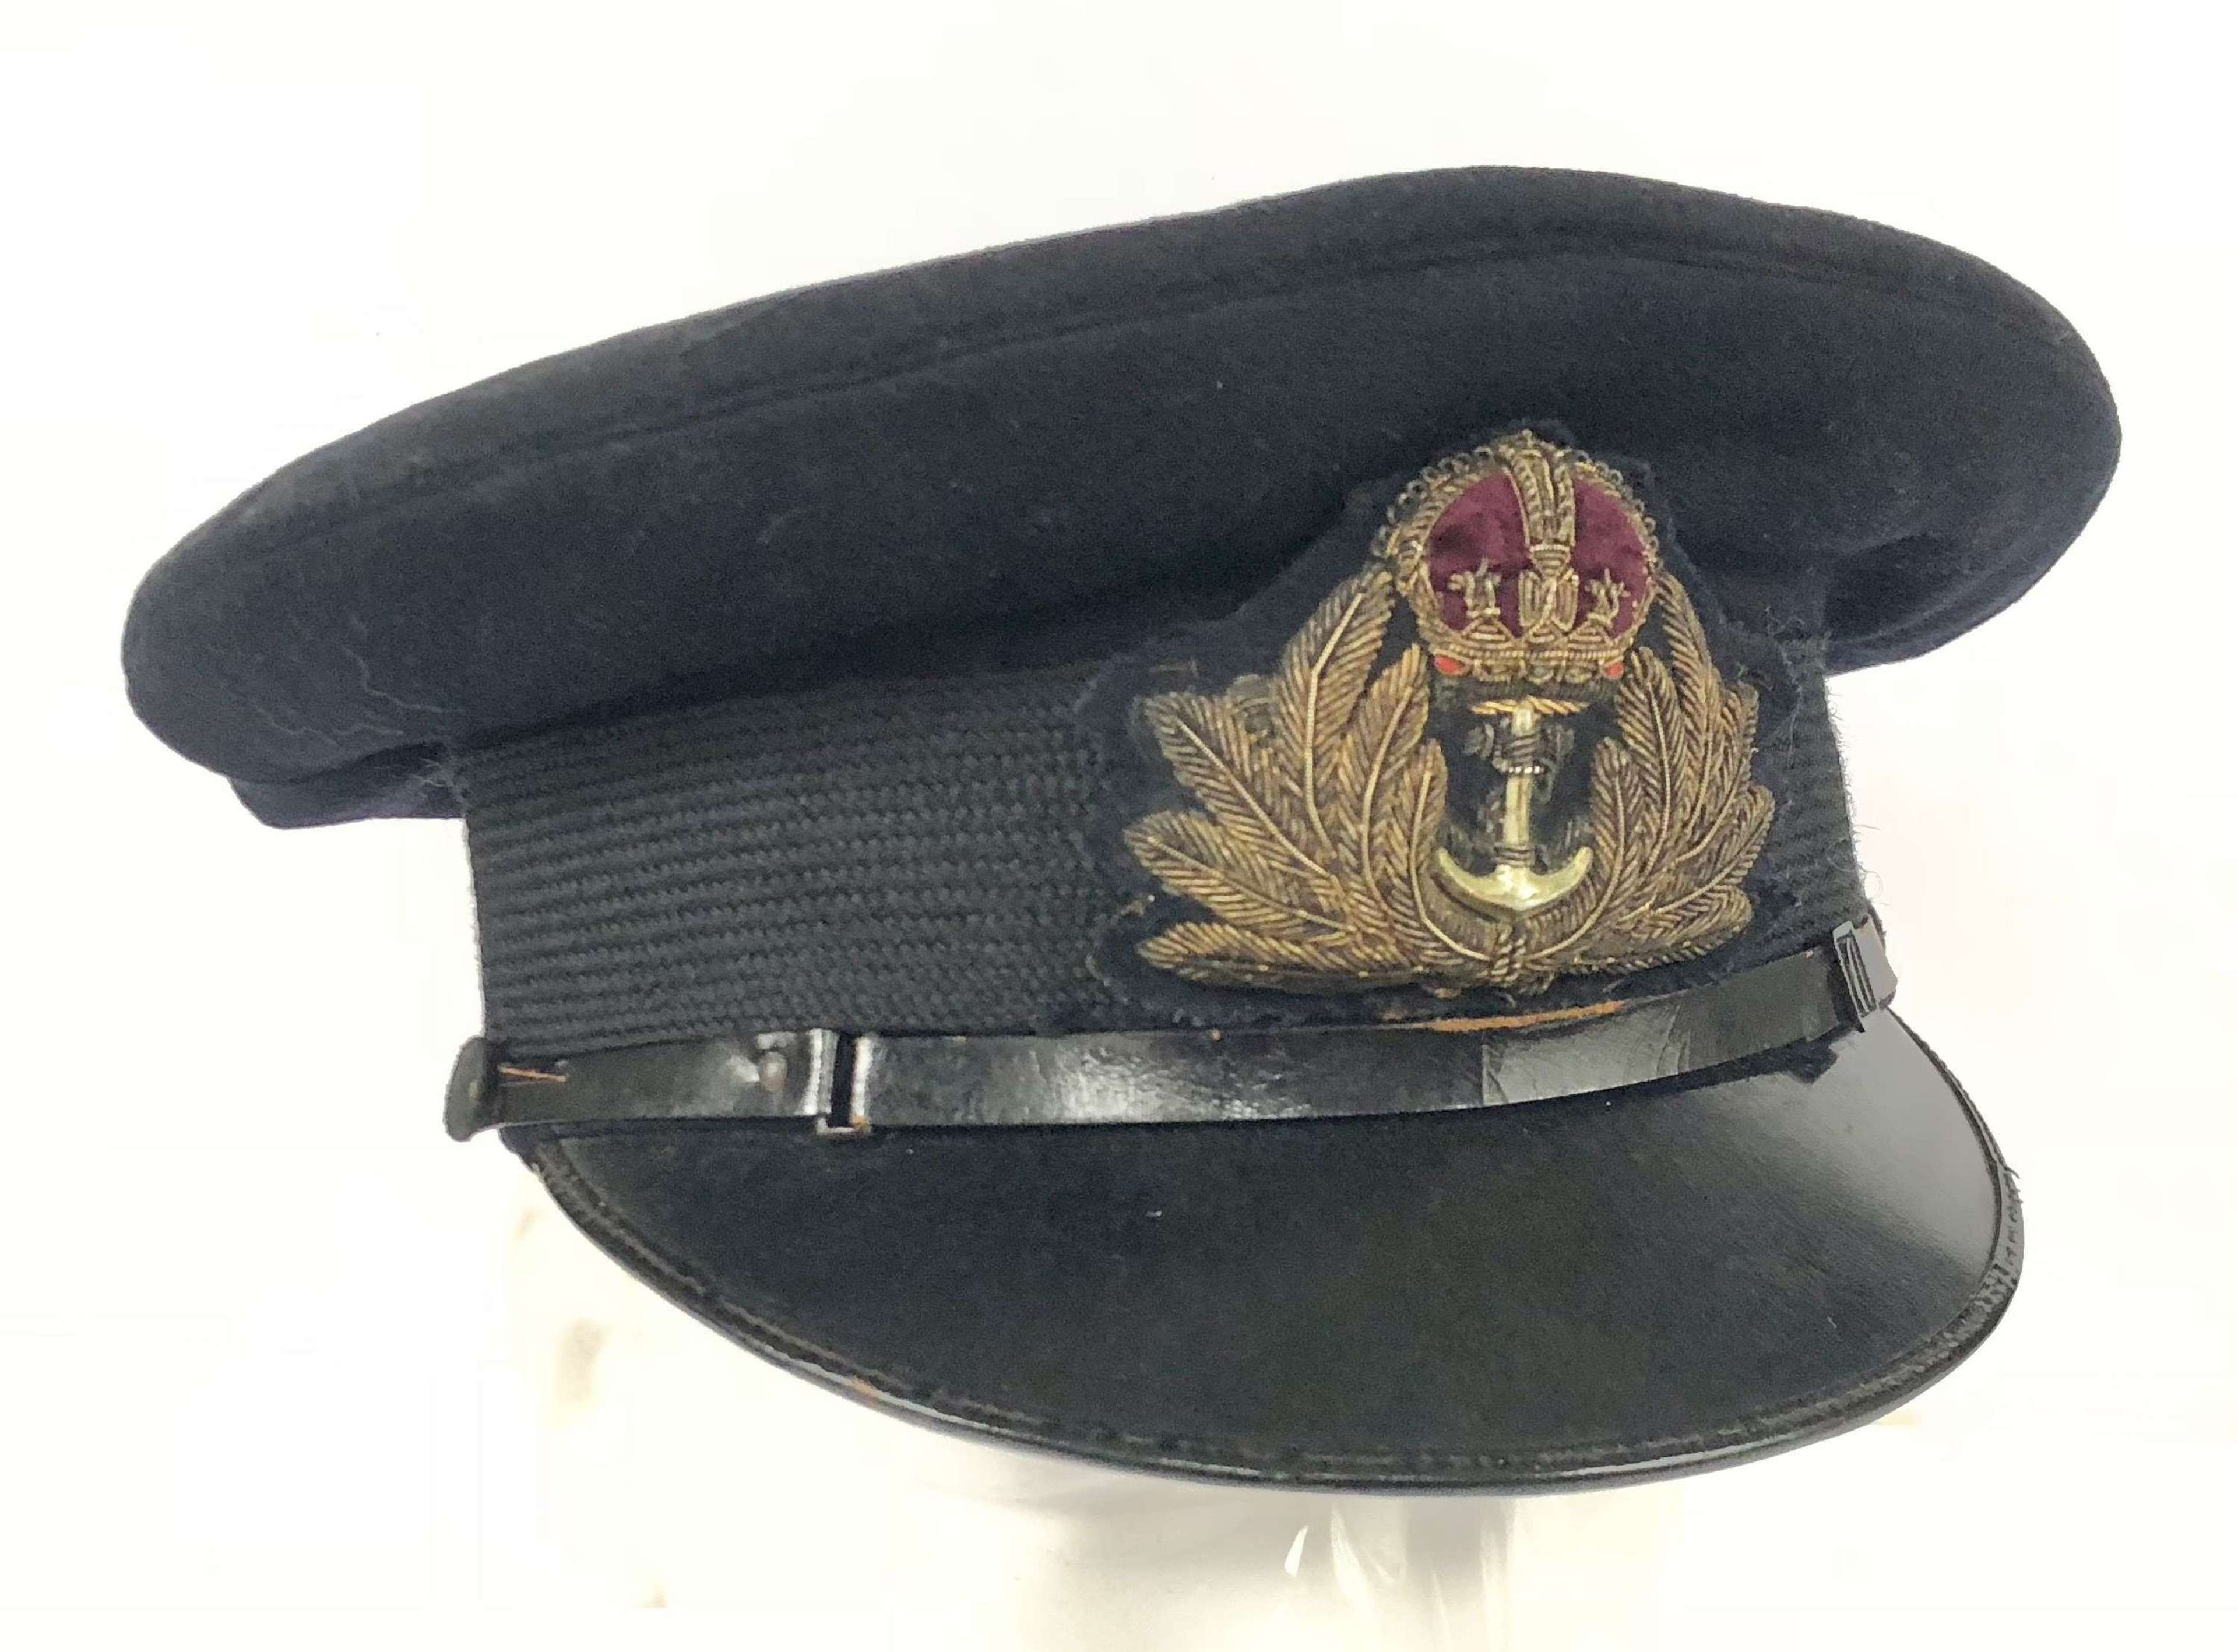 WW2 Royal Navy Officer's Cap Large Size